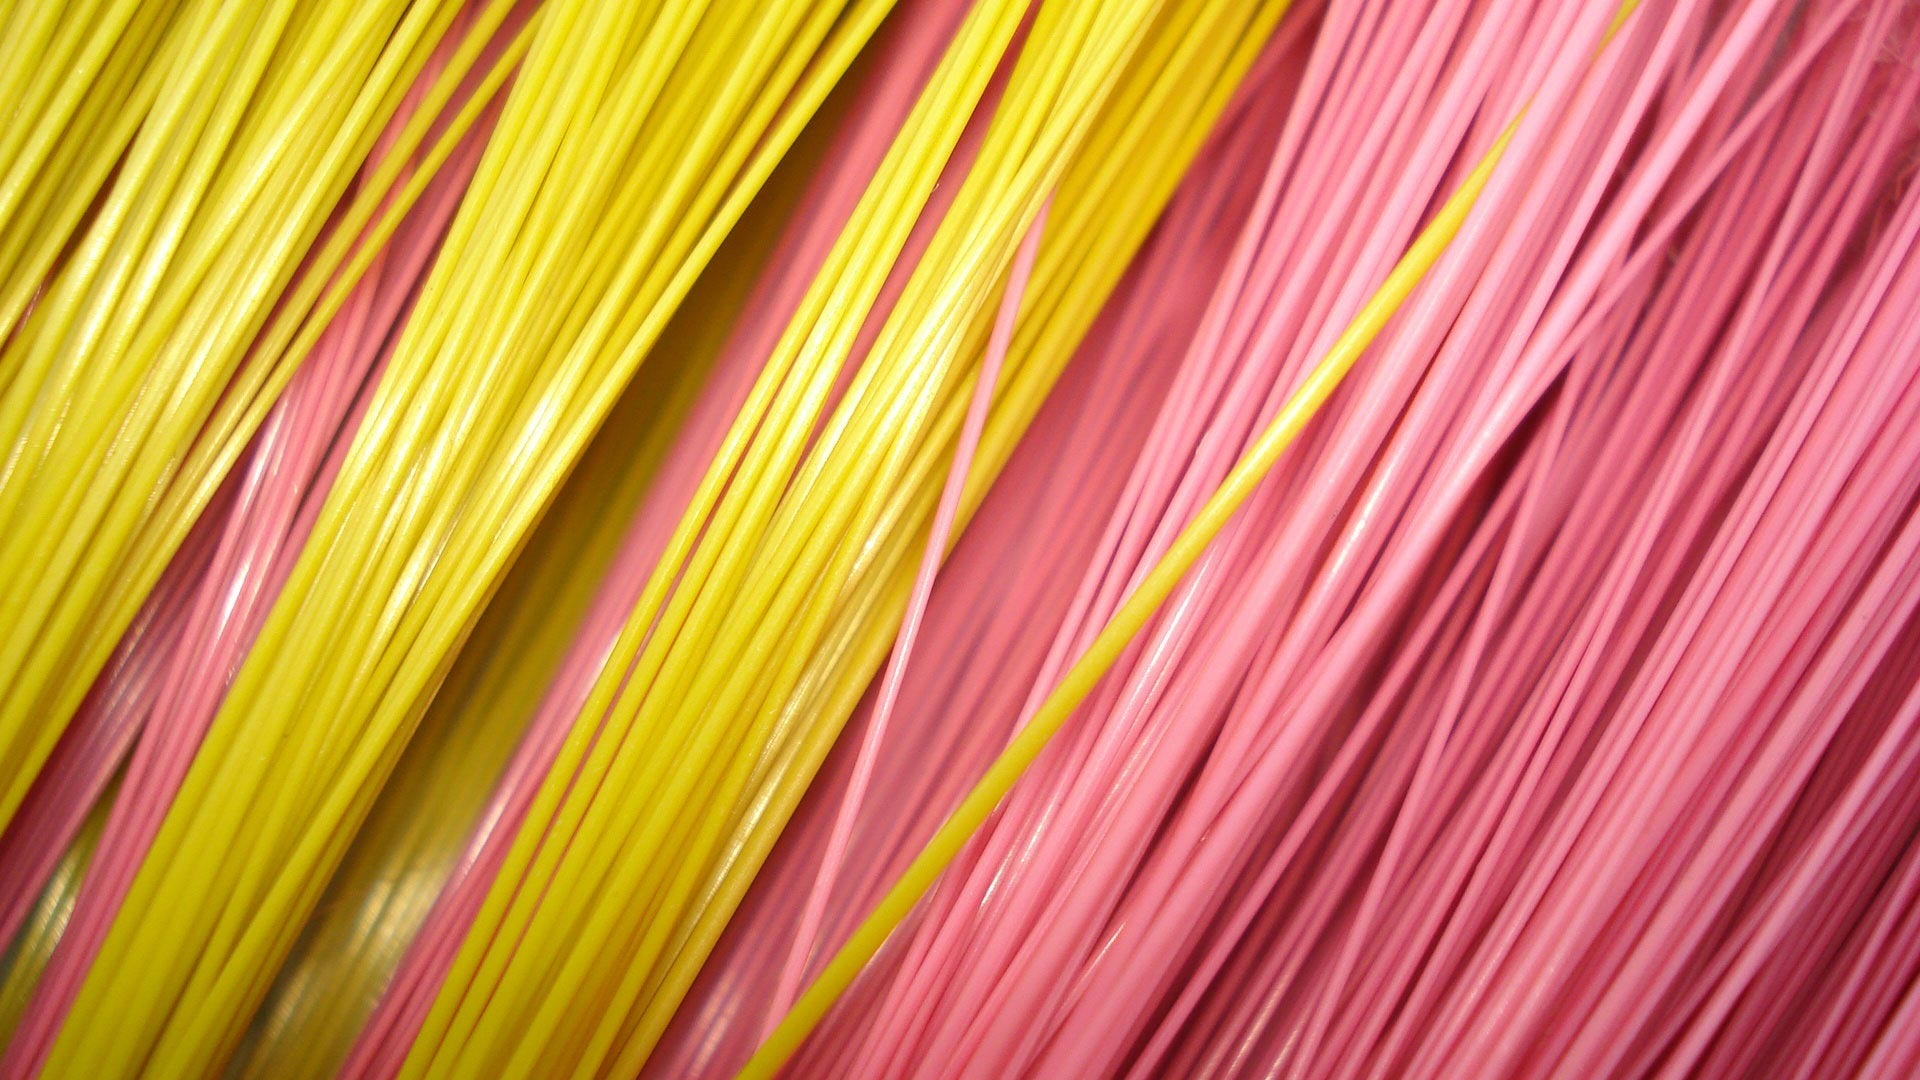 Pink and yellow wires